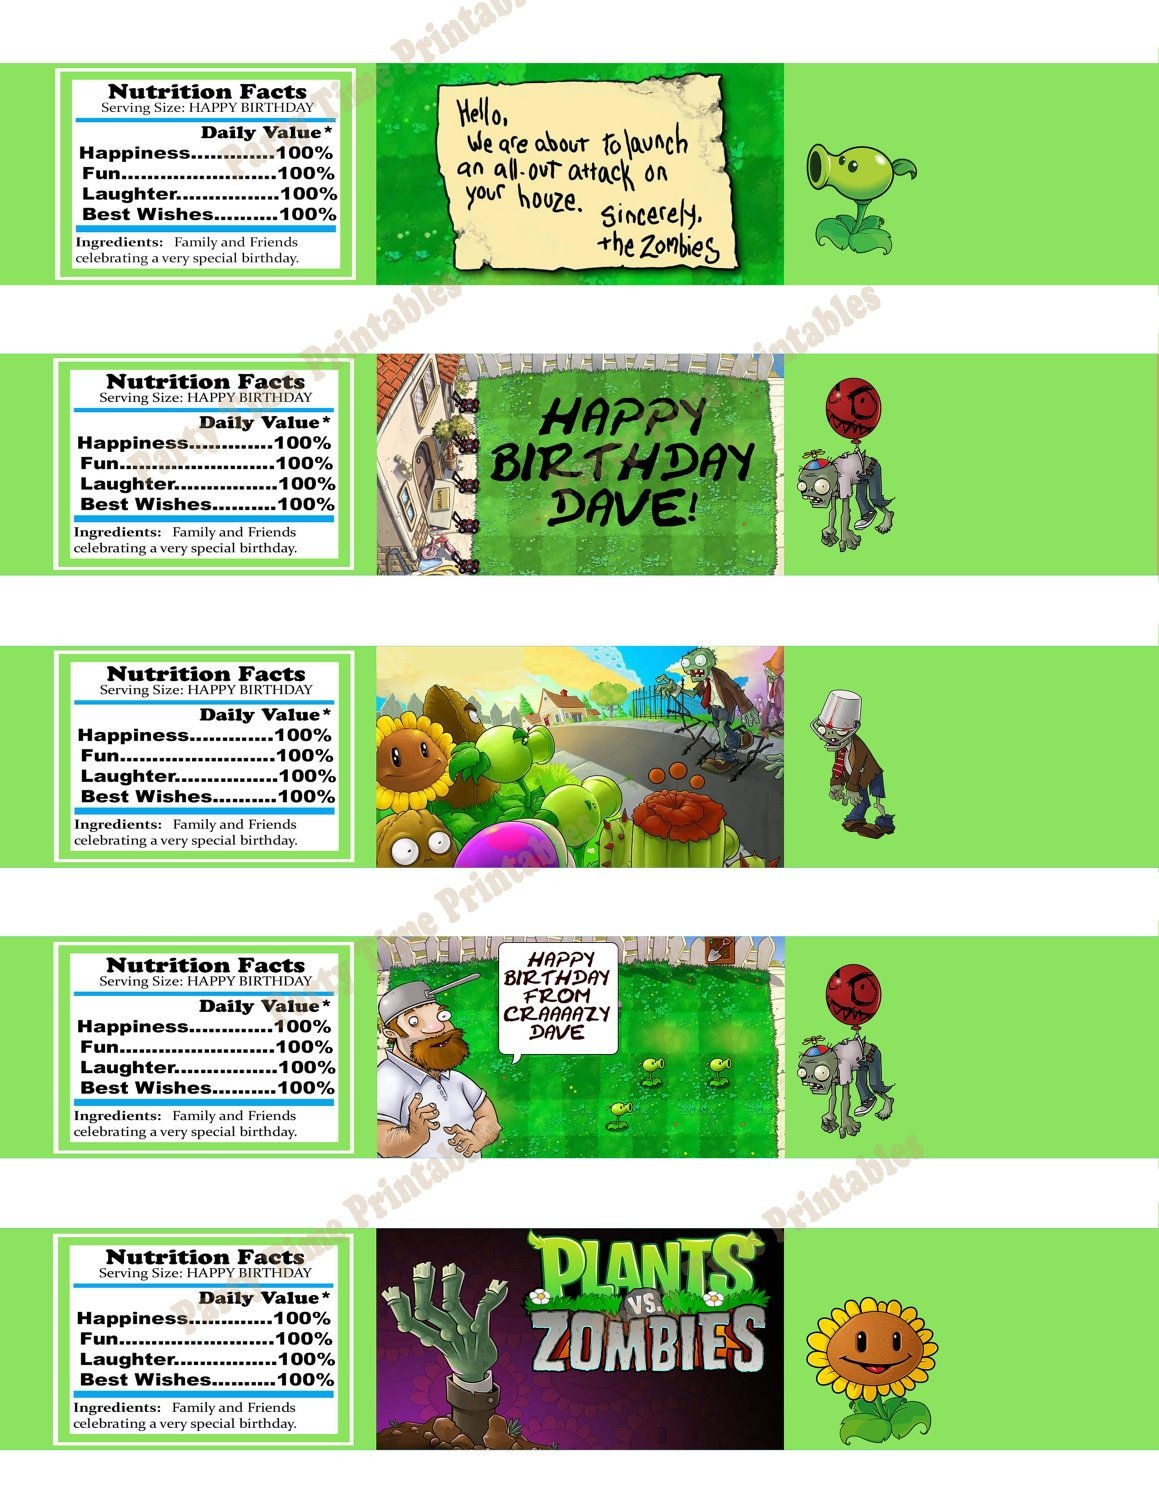 Printable Water Bottle Label- Party Printables - Plants Vs Zombies - Plants Vs Zombies Free Printable Invitations